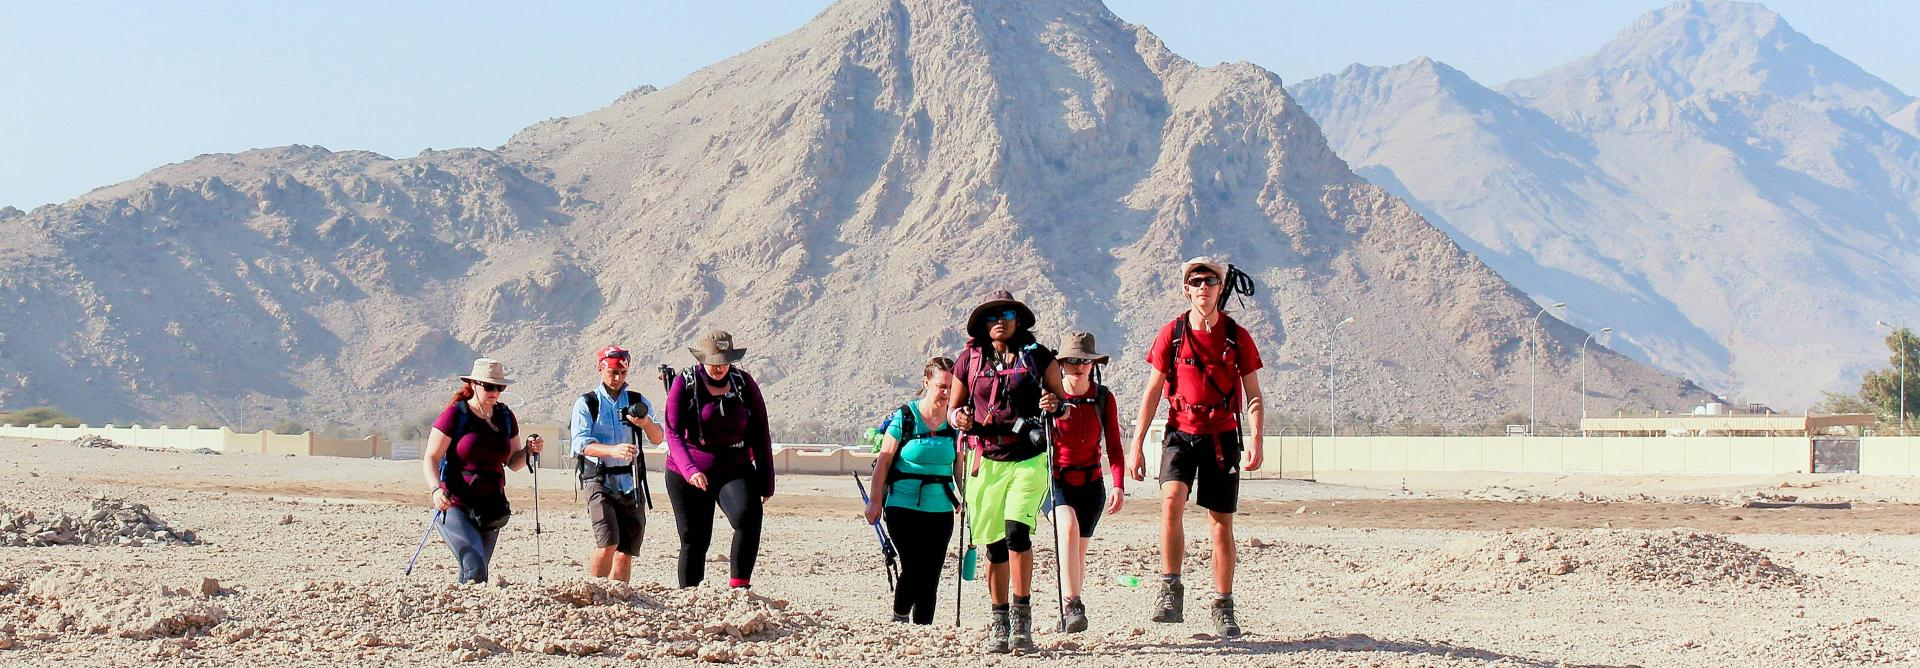 hikers walk the pathways of the Oman Mountain Trek